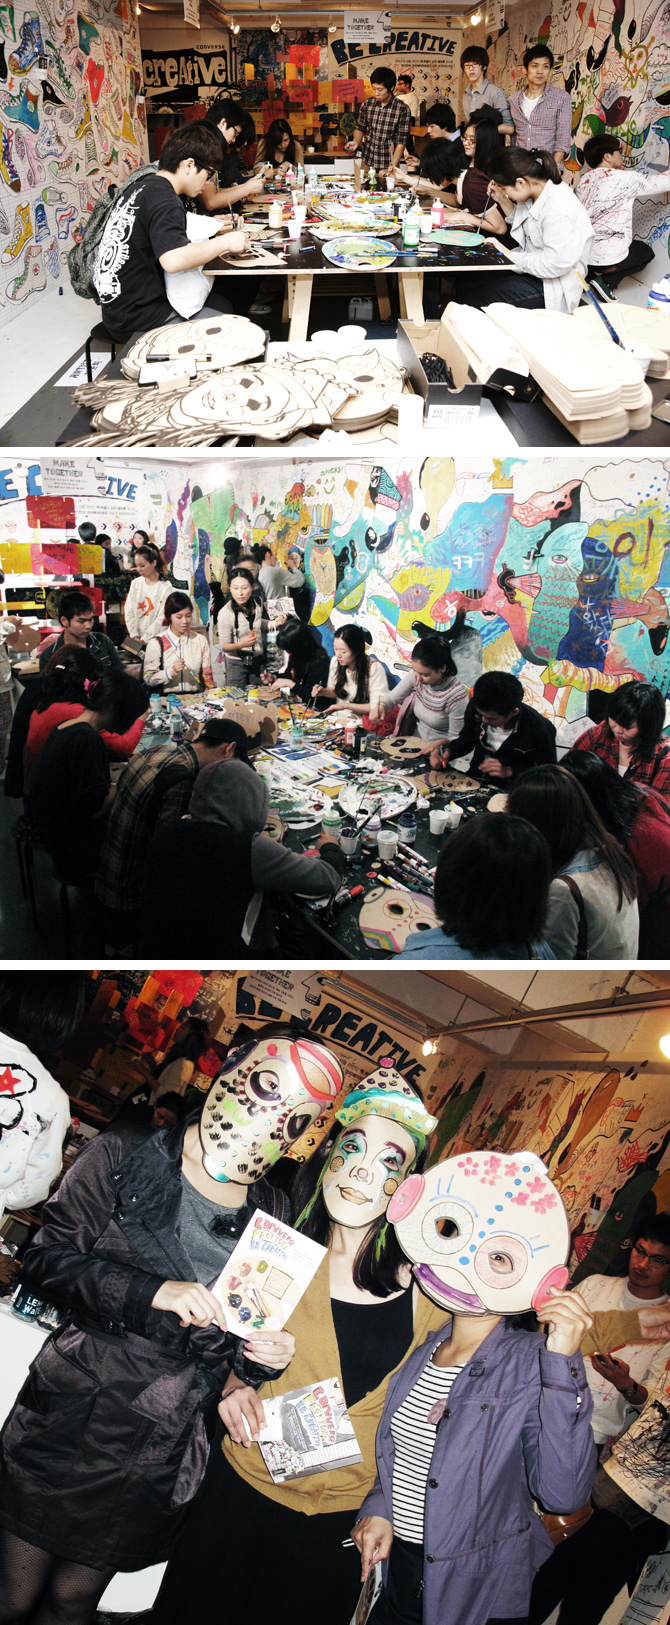 Converse Festival 'Be Creative' The Gallery